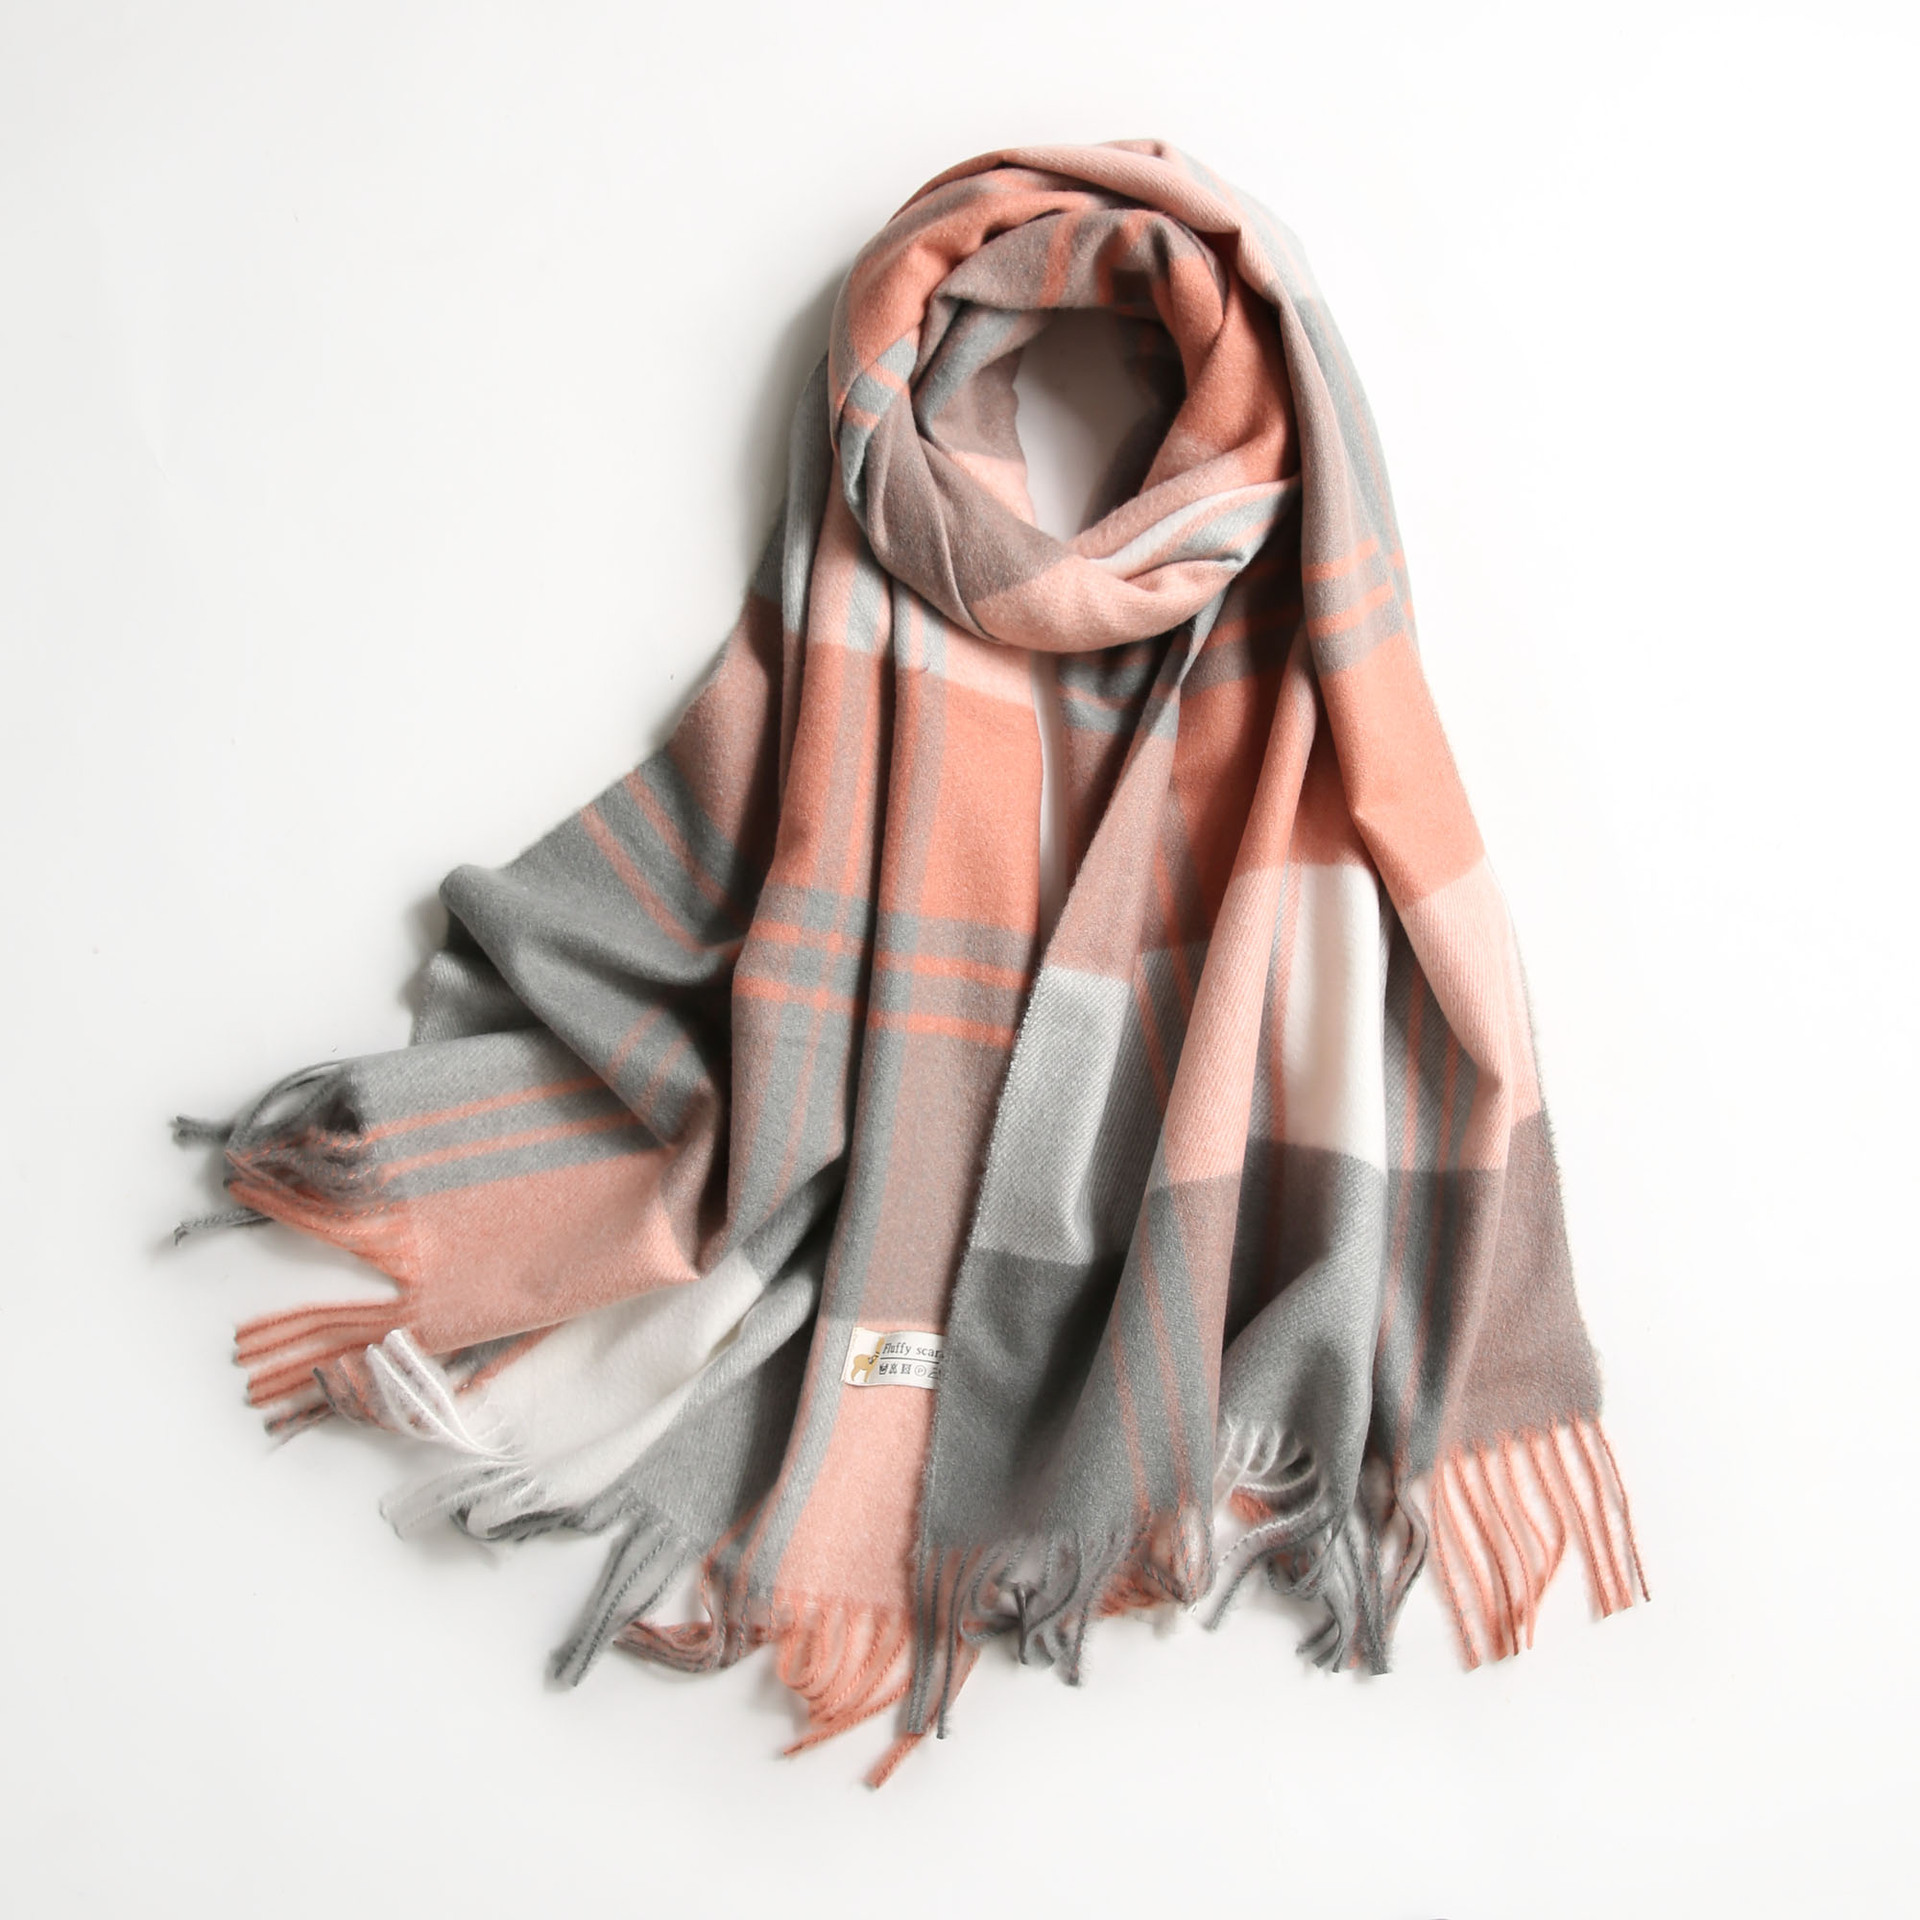 Plaid Fashion Winter Cashmere Scarf For Women Thick Pashmina Female Stole Plaid Tassels Shawl Scarves Sjaal Foulard Femme 2018